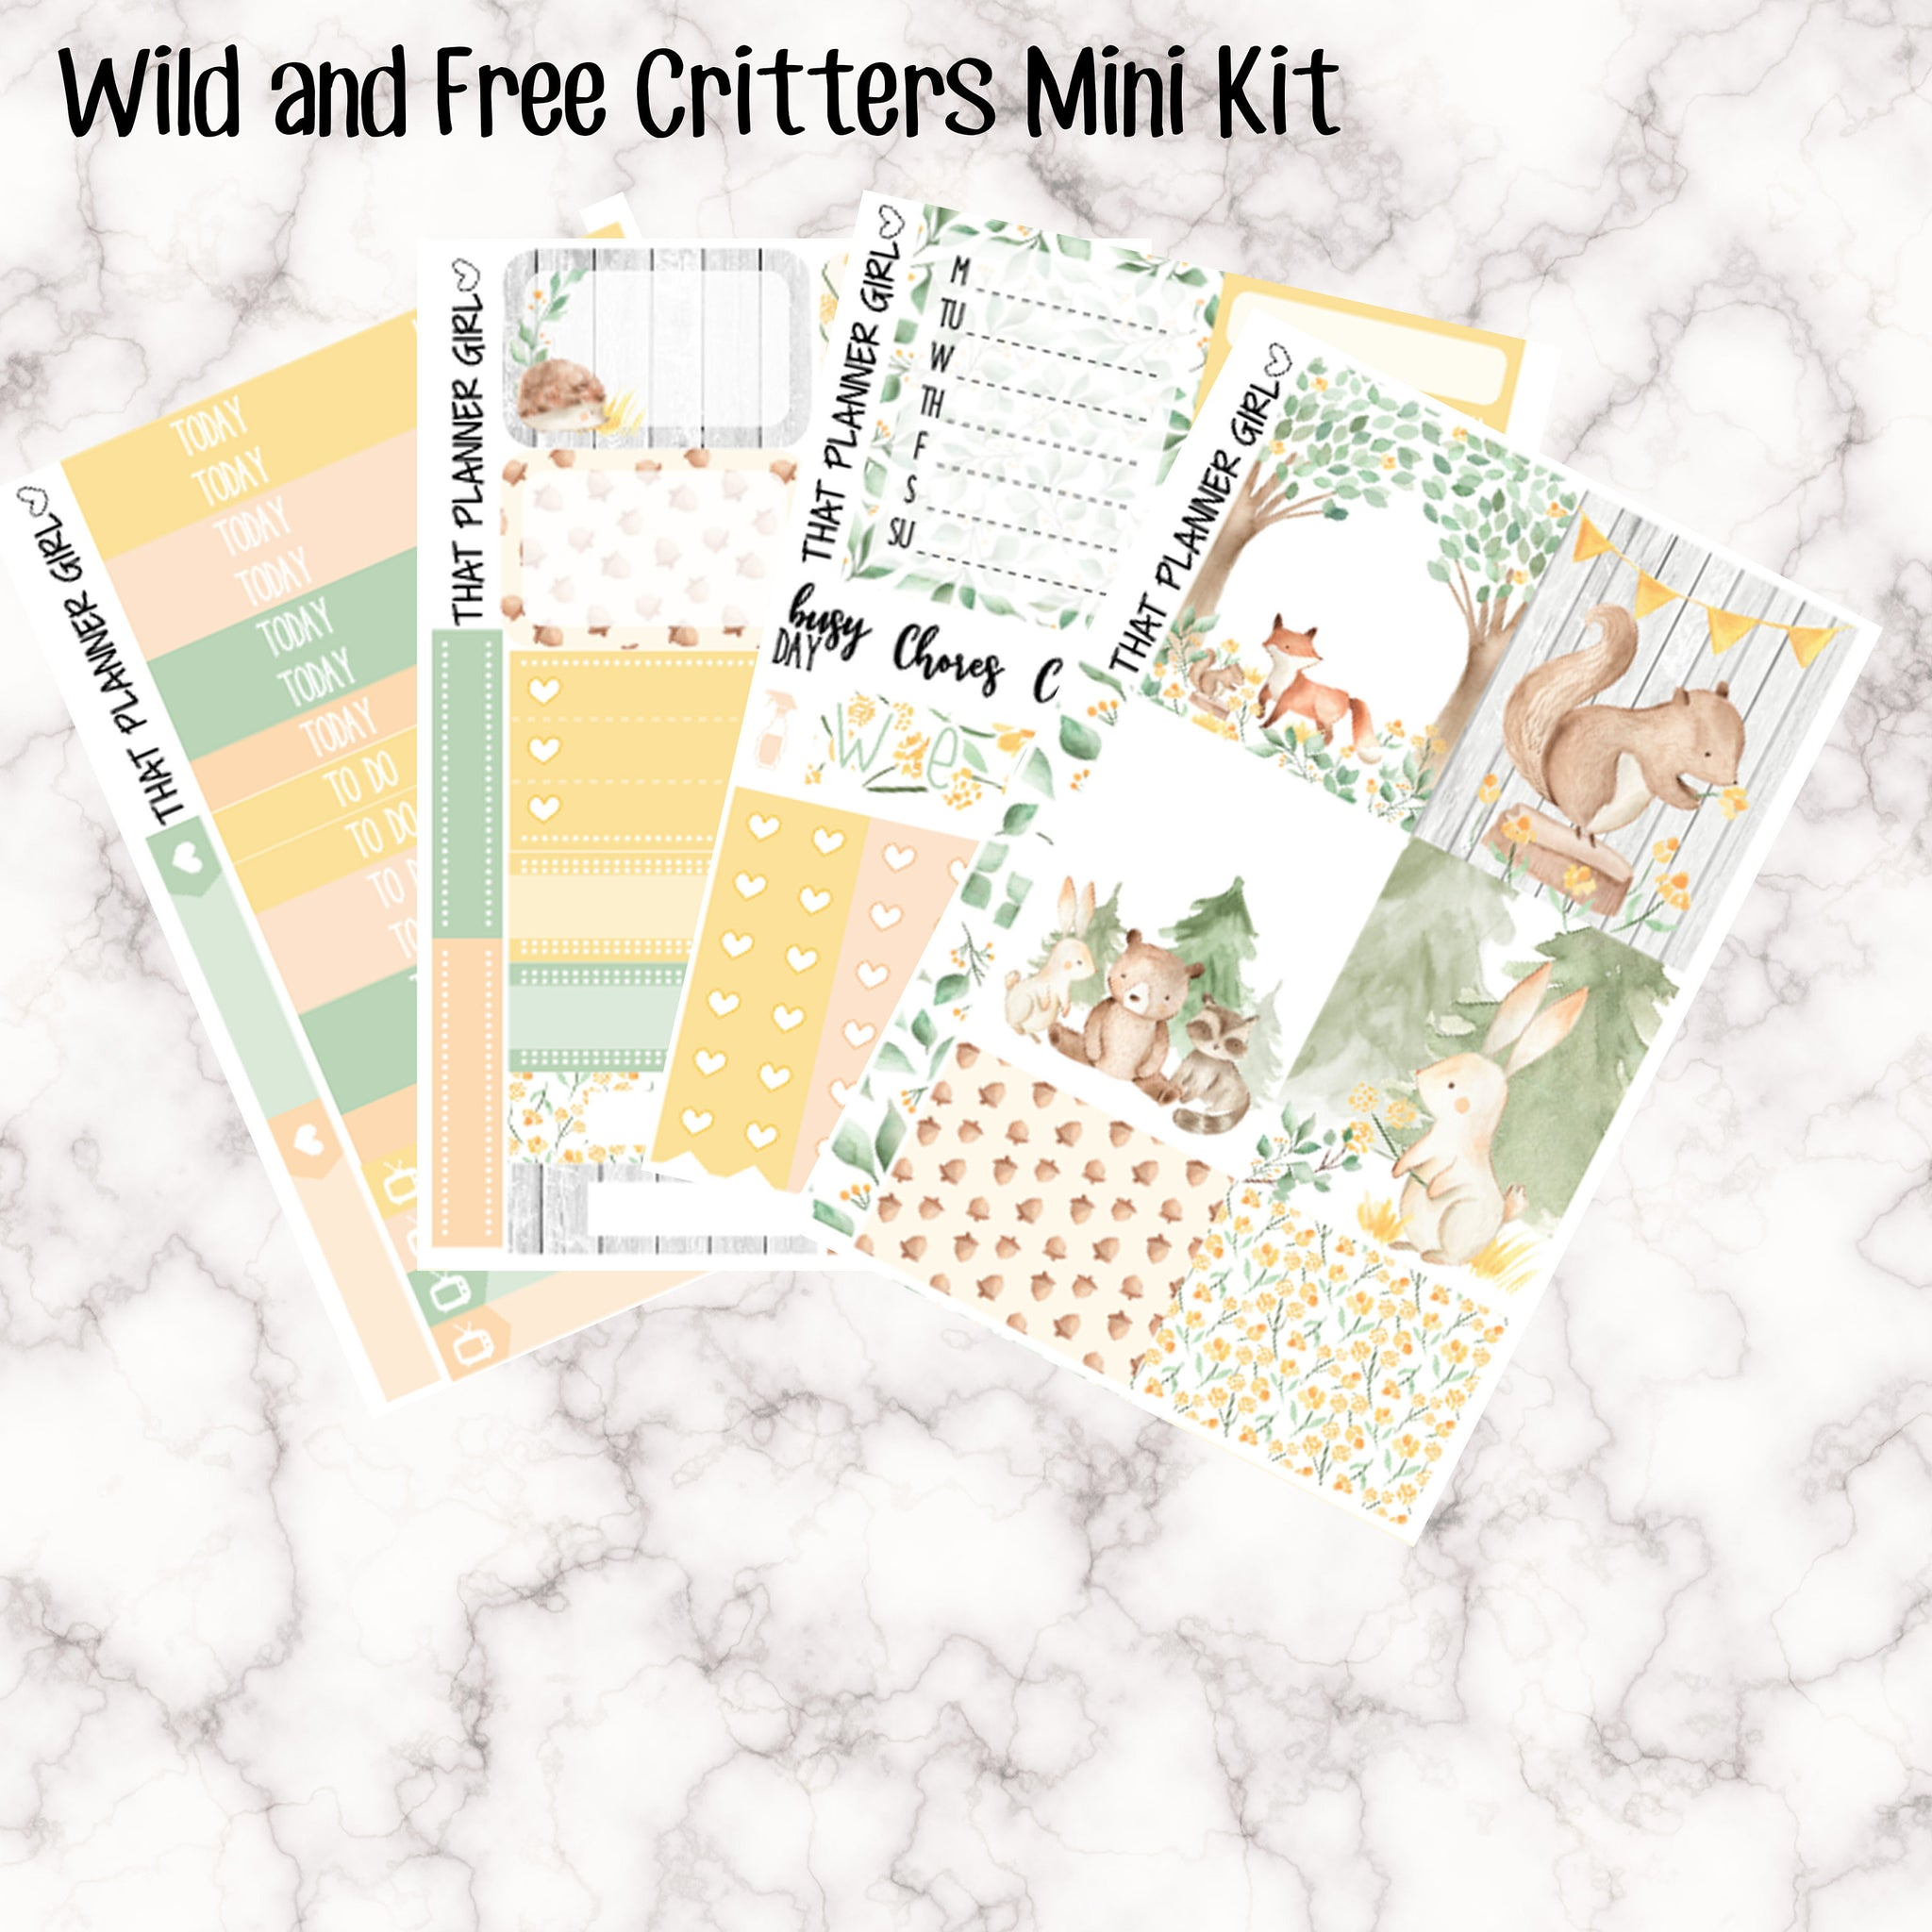 Wild and Free Critters Mini Kit - Sheets available individually or as a full kit!!